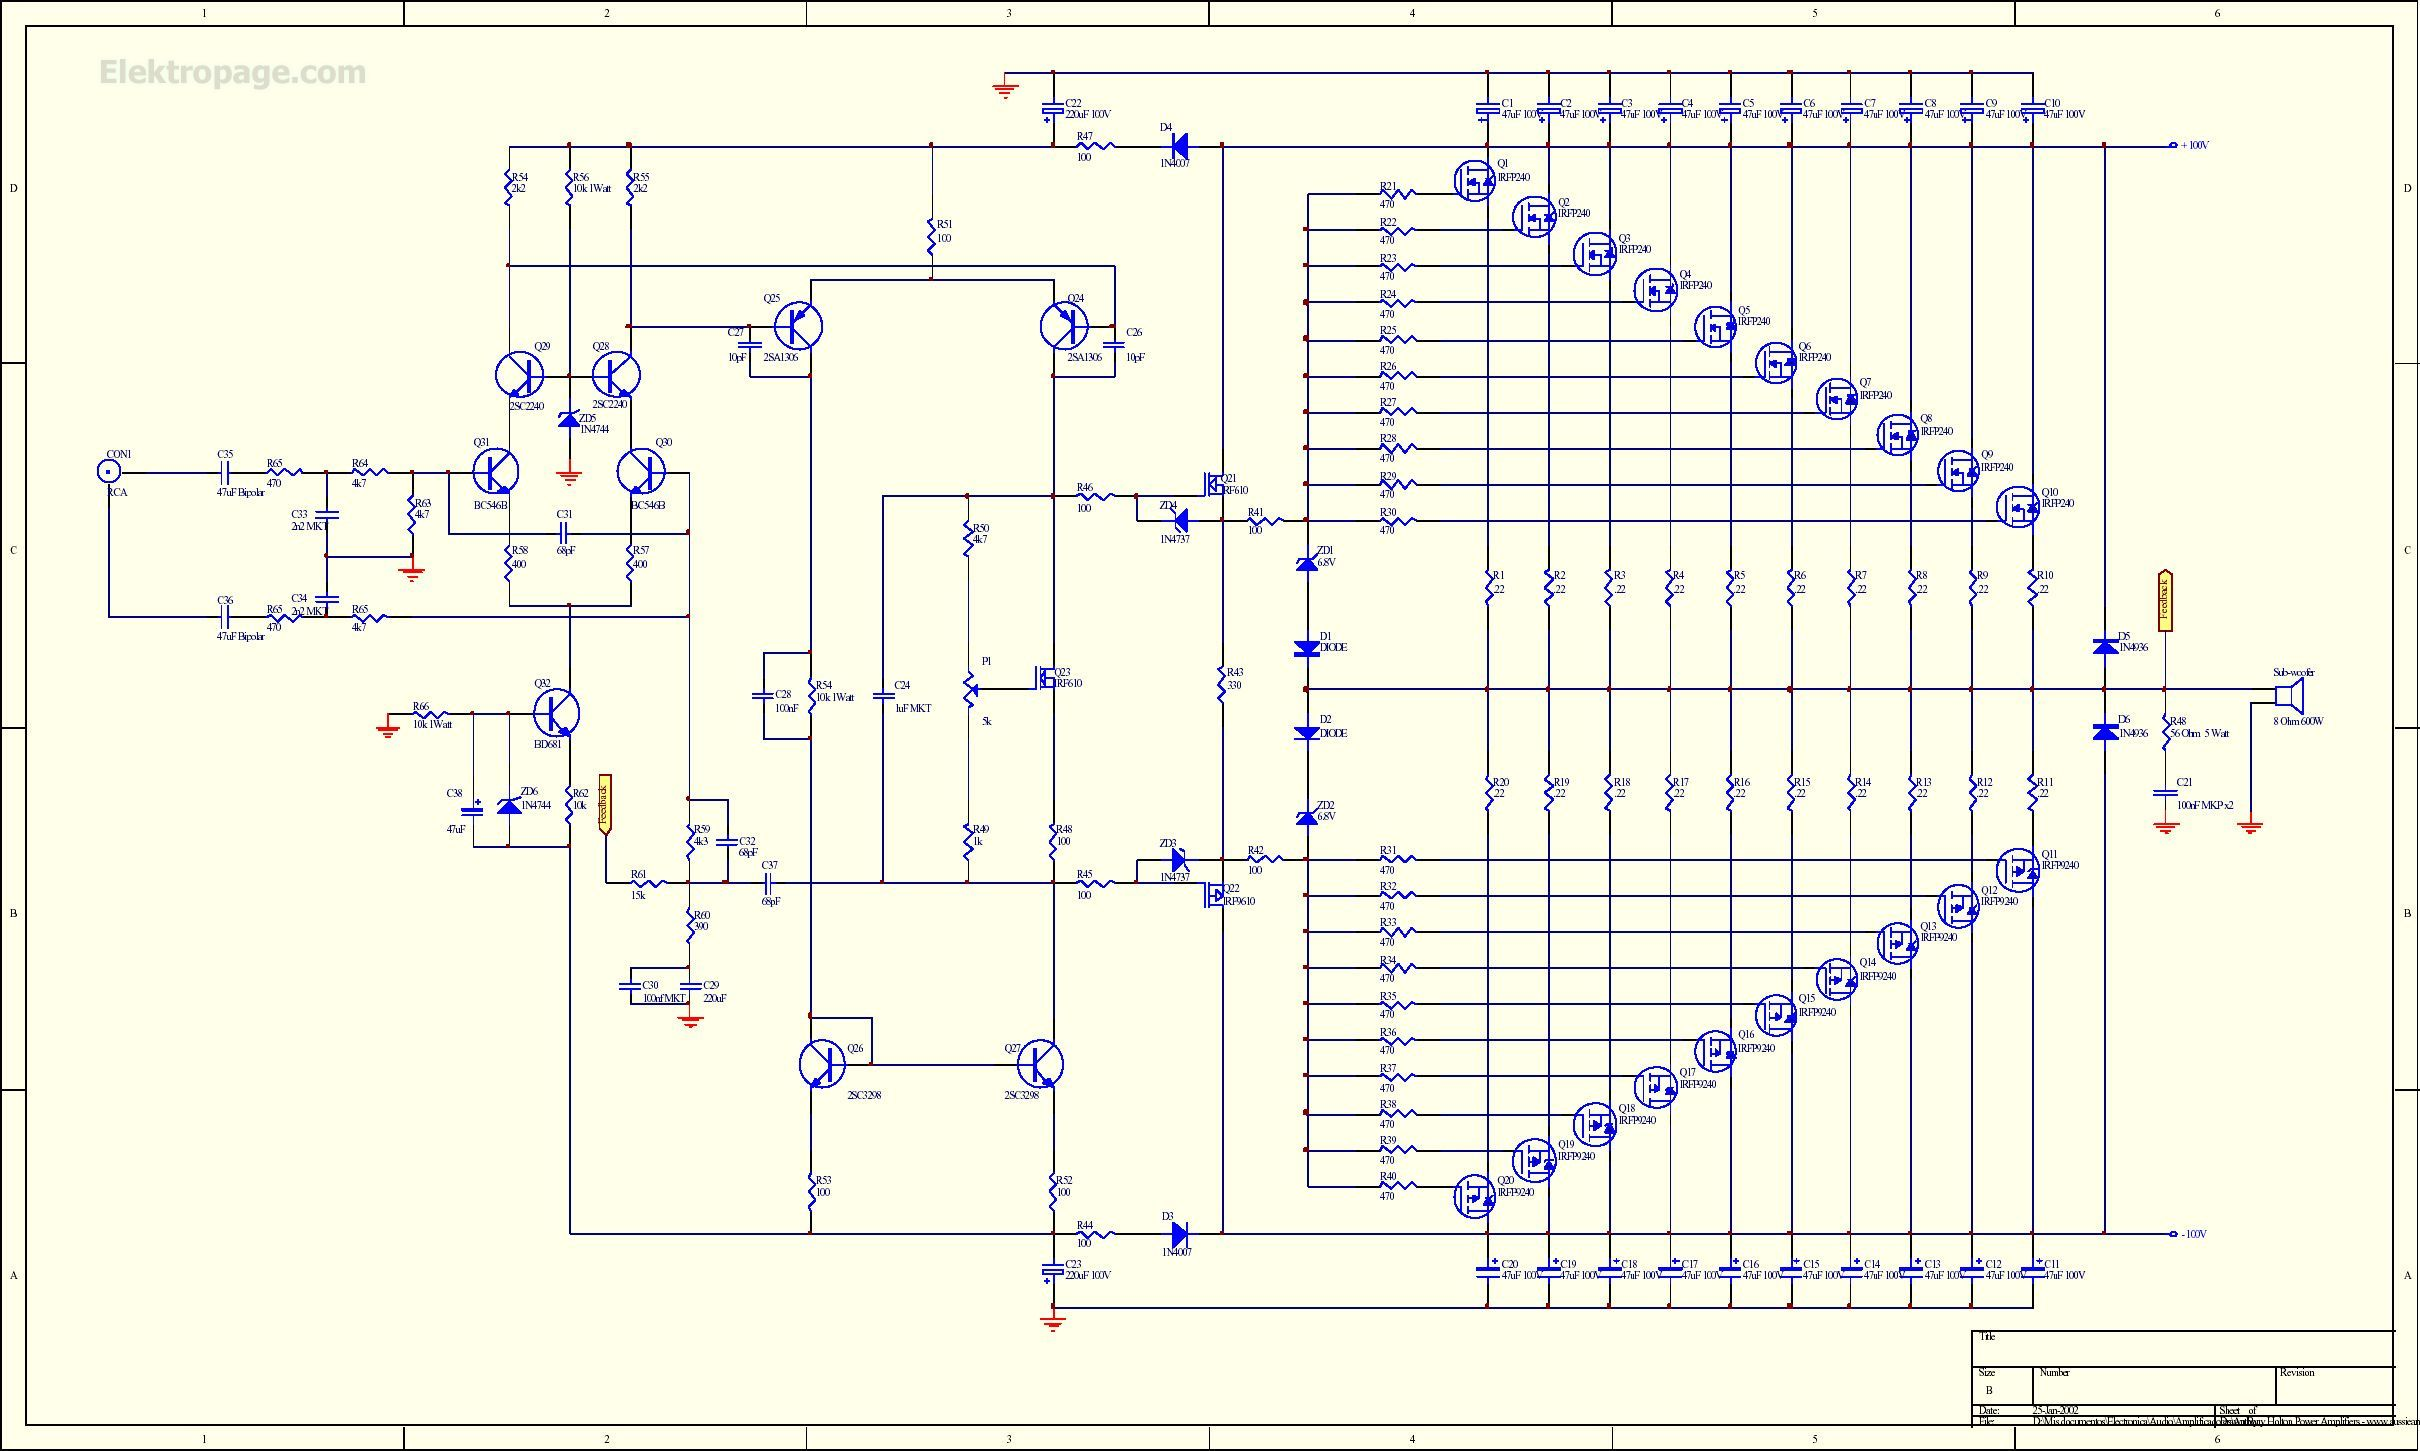 1kw Rms Mosfet Amplifier Shematic 1000w Power Circuit Diagram Electronic Circuits To View Full Picture Of The Schematic